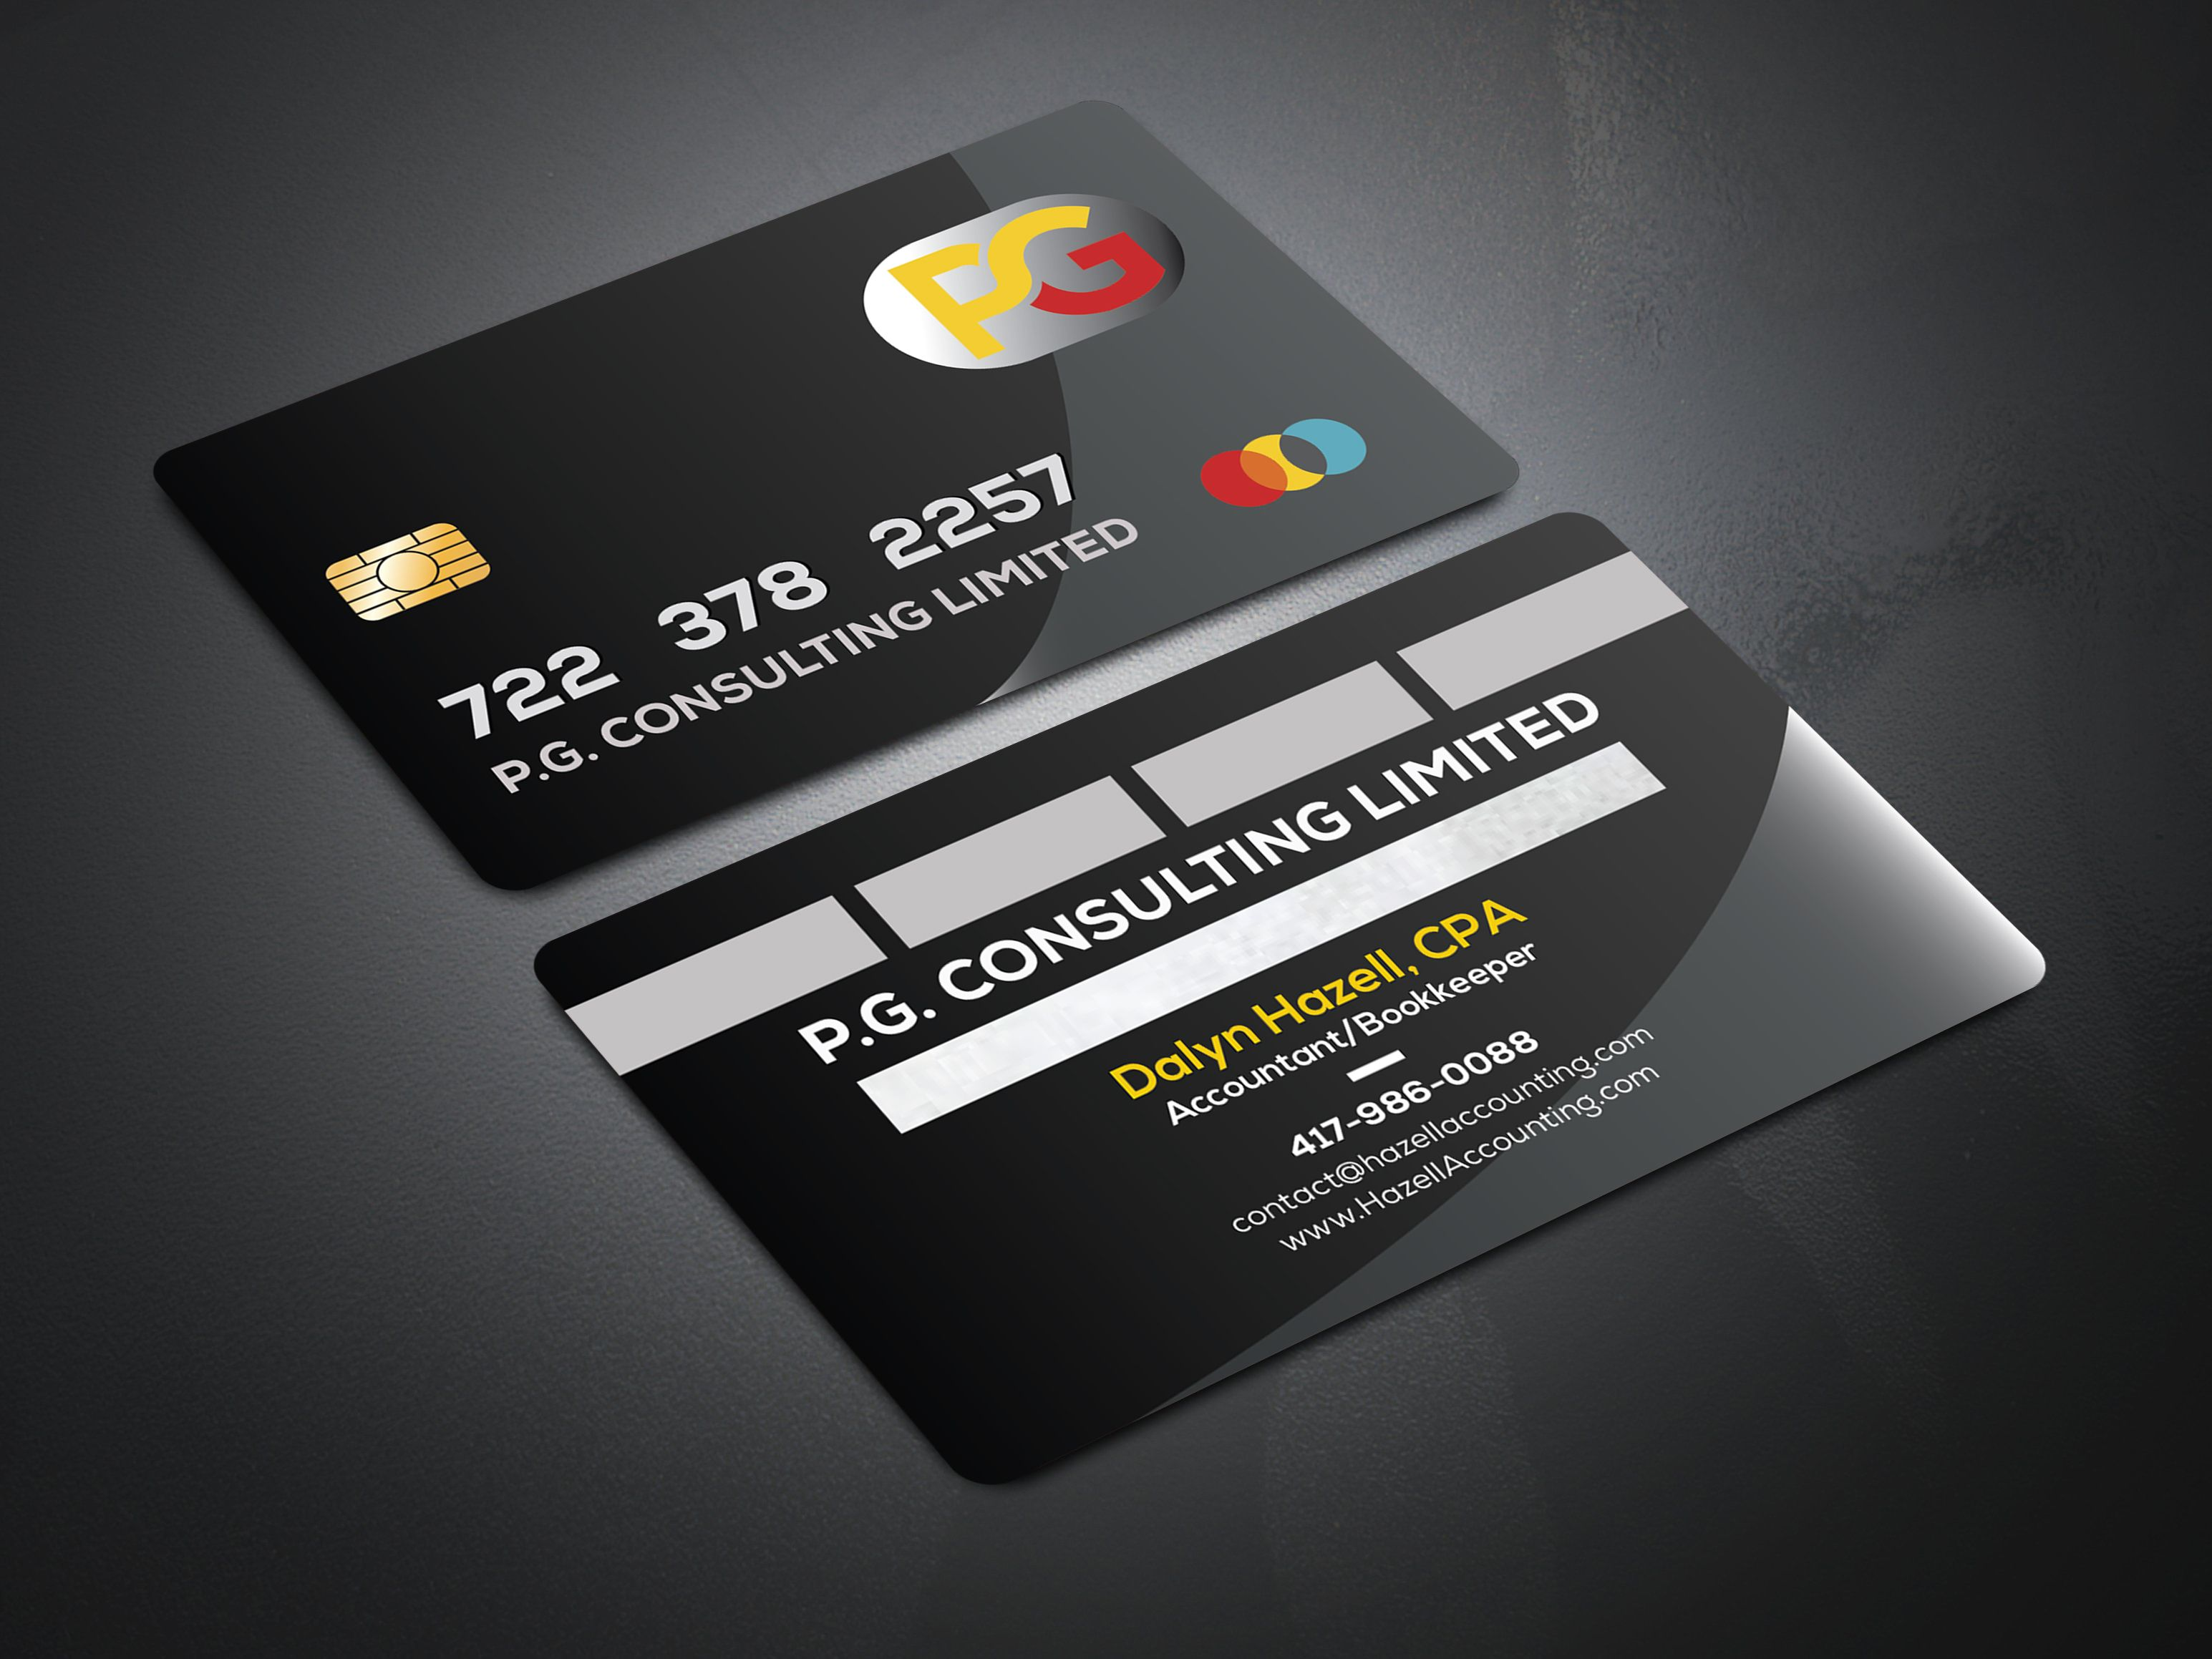 Debit Card Style Business Card Templates Business Cards Creative Minimalist Business Cards Round Business Cards